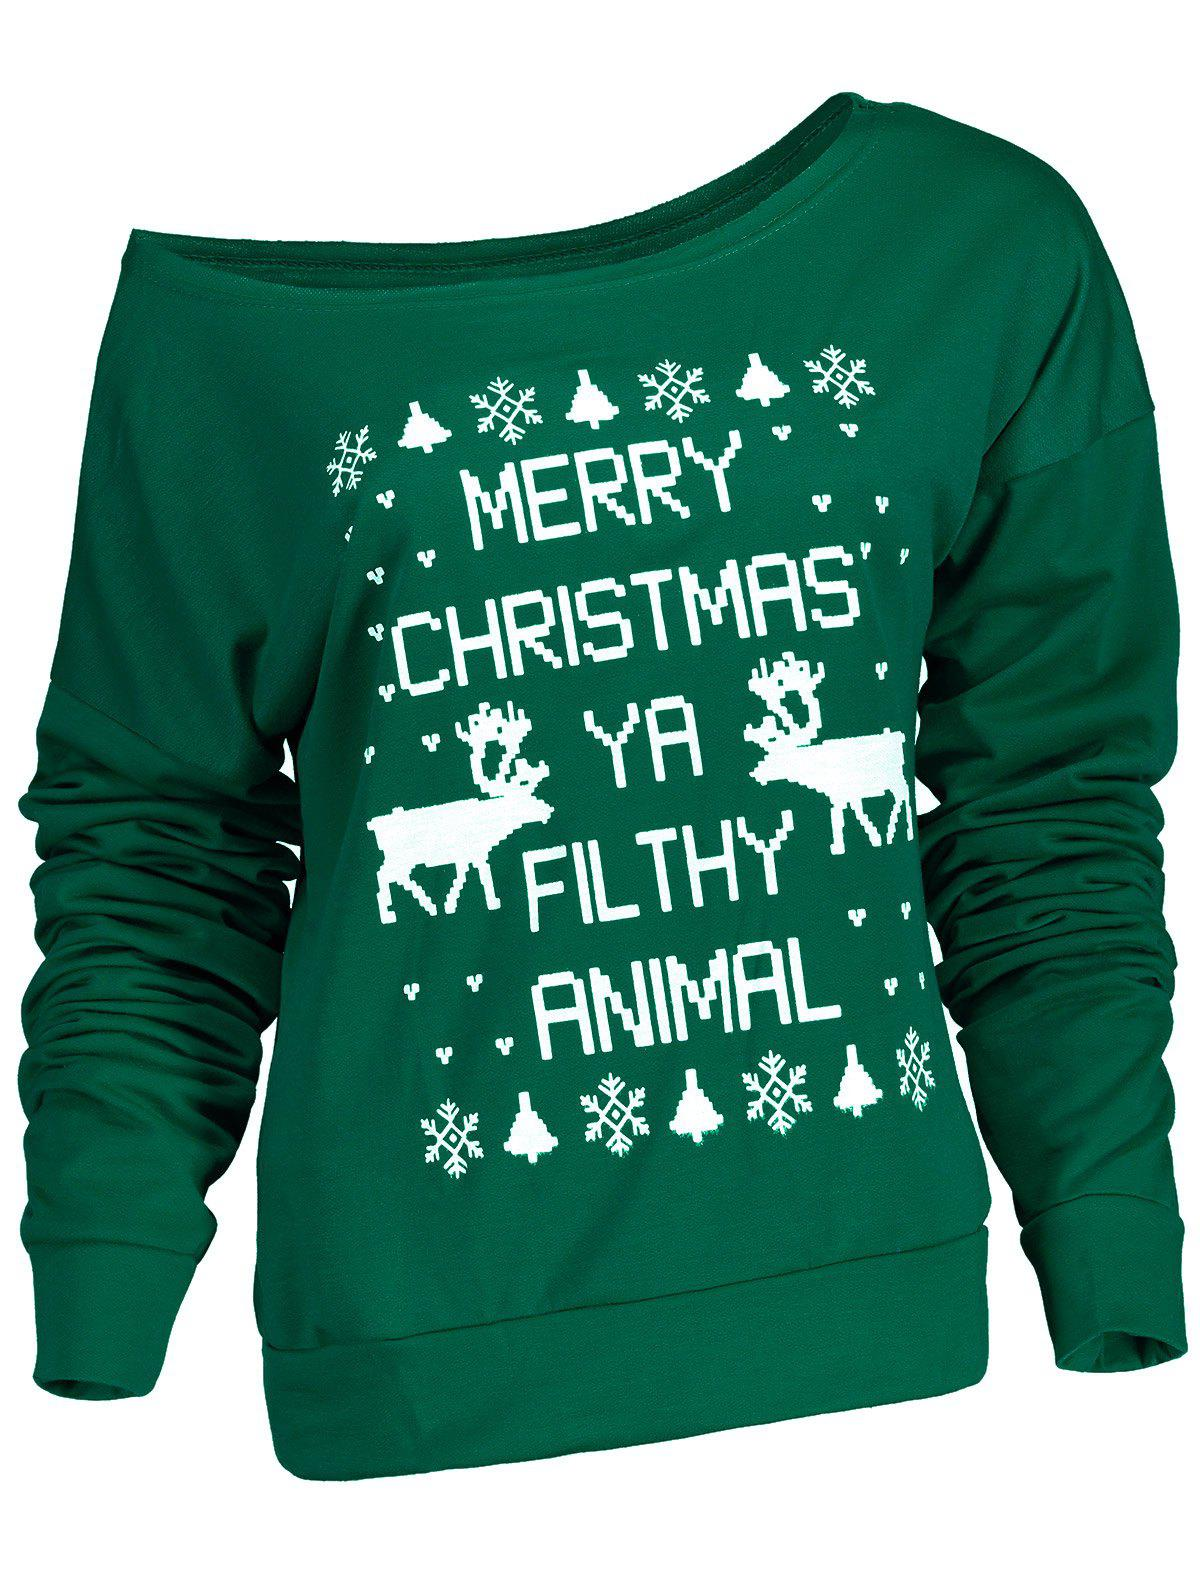 Fresh Style Letter and Snowflake Print Pullover Christmas Sweatshirt For WomenWOMEN<br><br>Size: XL; Color: GREEN; Material: Polyester; Shirt Length: Regular; Sleeve Length: Full; Style: Fashion; Pattern Style: Print; Weight: 0.380kg; Package Contents: 1 x Sweatshirt;